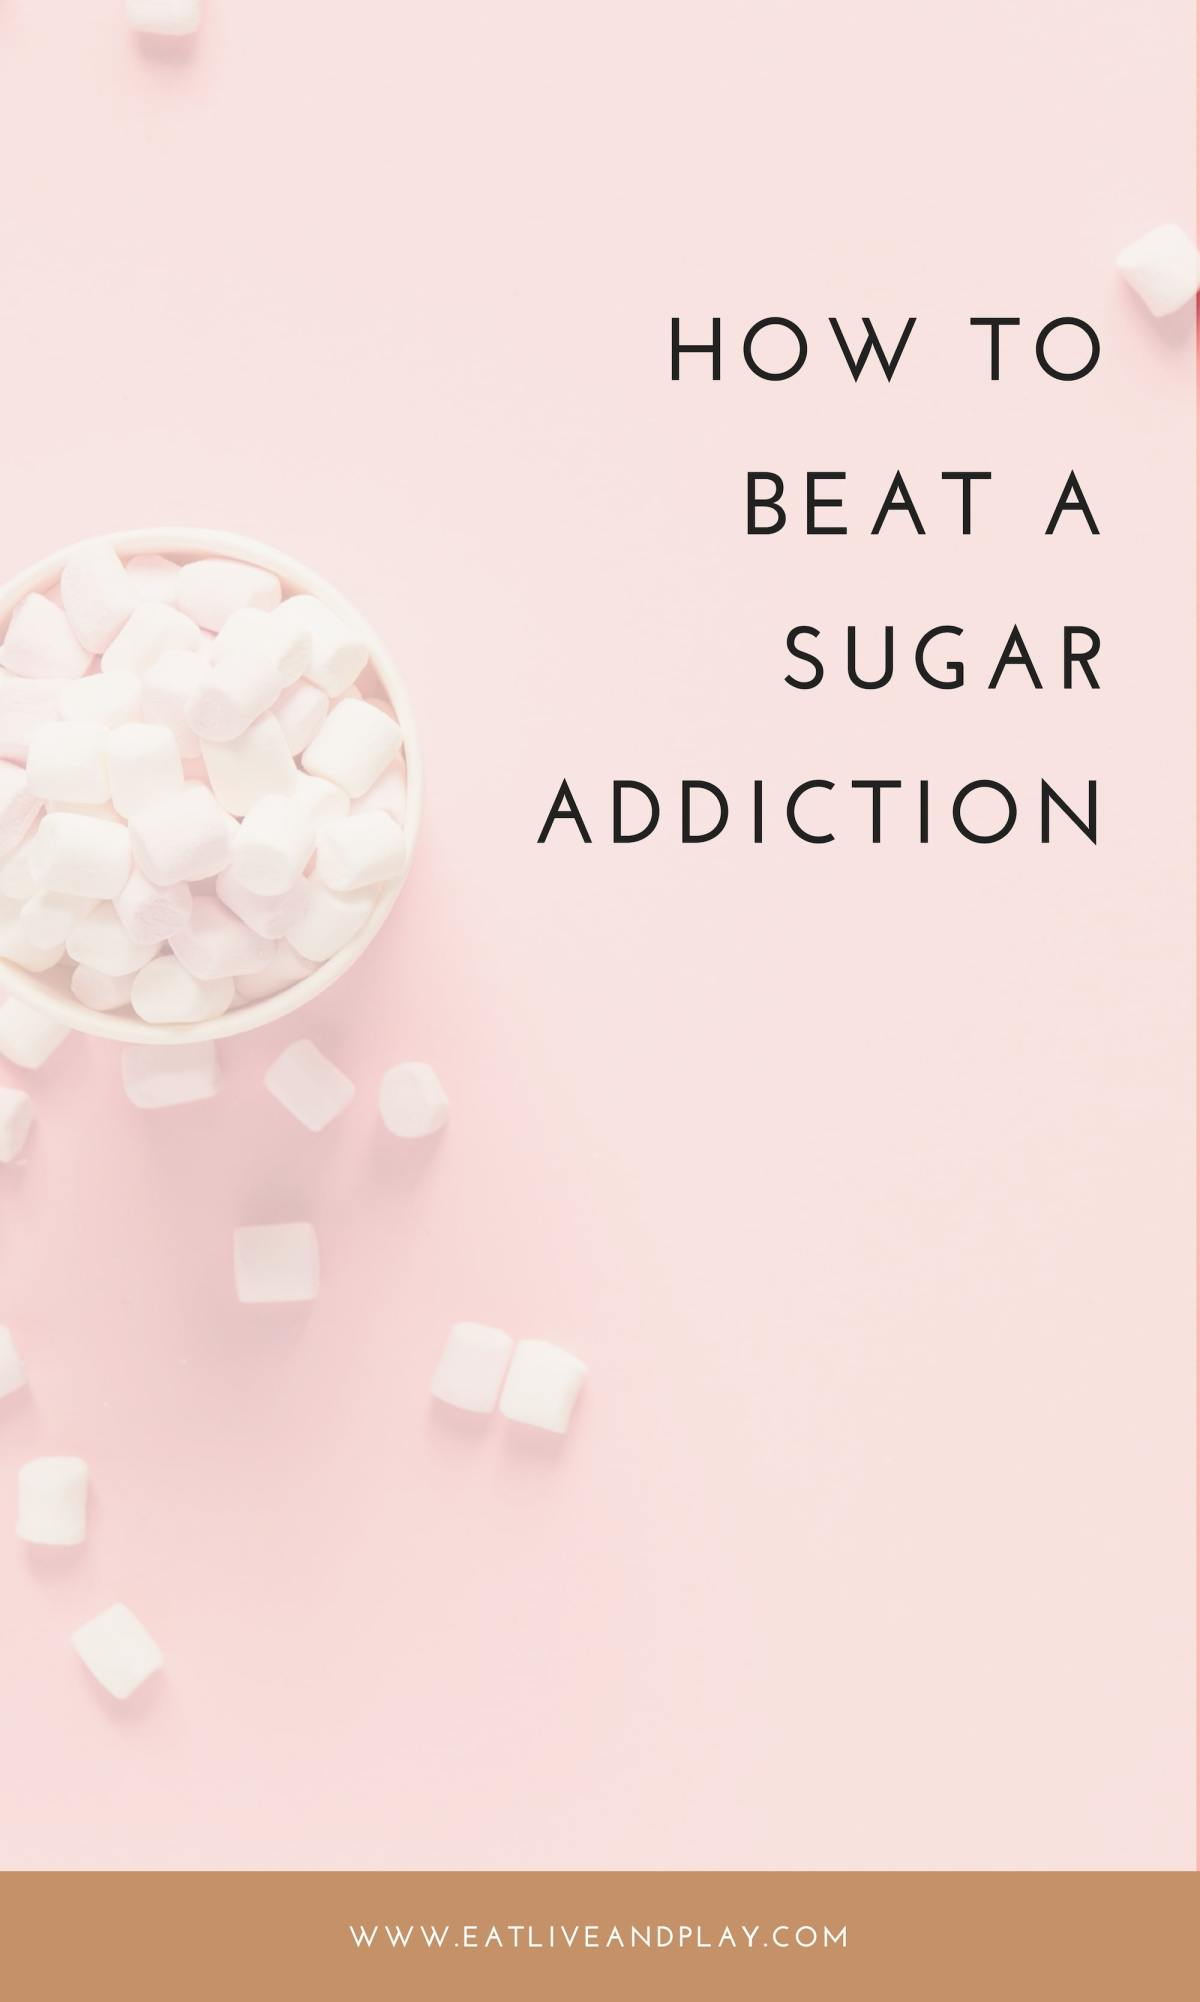 Beating a sugar addiction is so much easier when you know these 3 tricks!